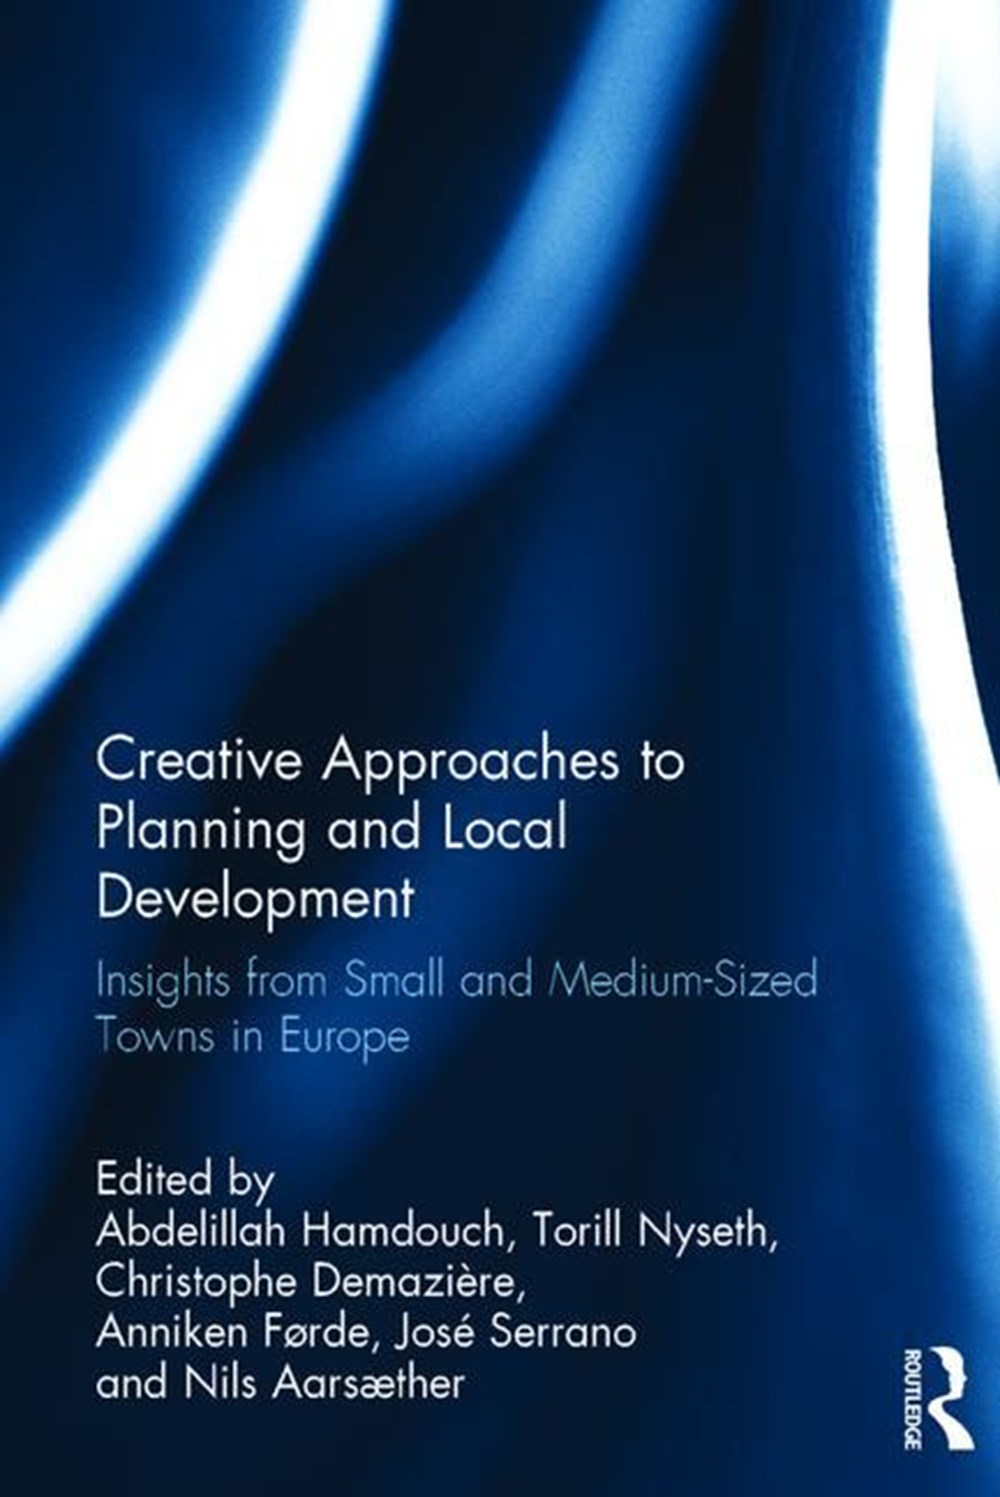 Creative Approaches to Planning and Local Development Insights from Small and Medium-Sized Towns in